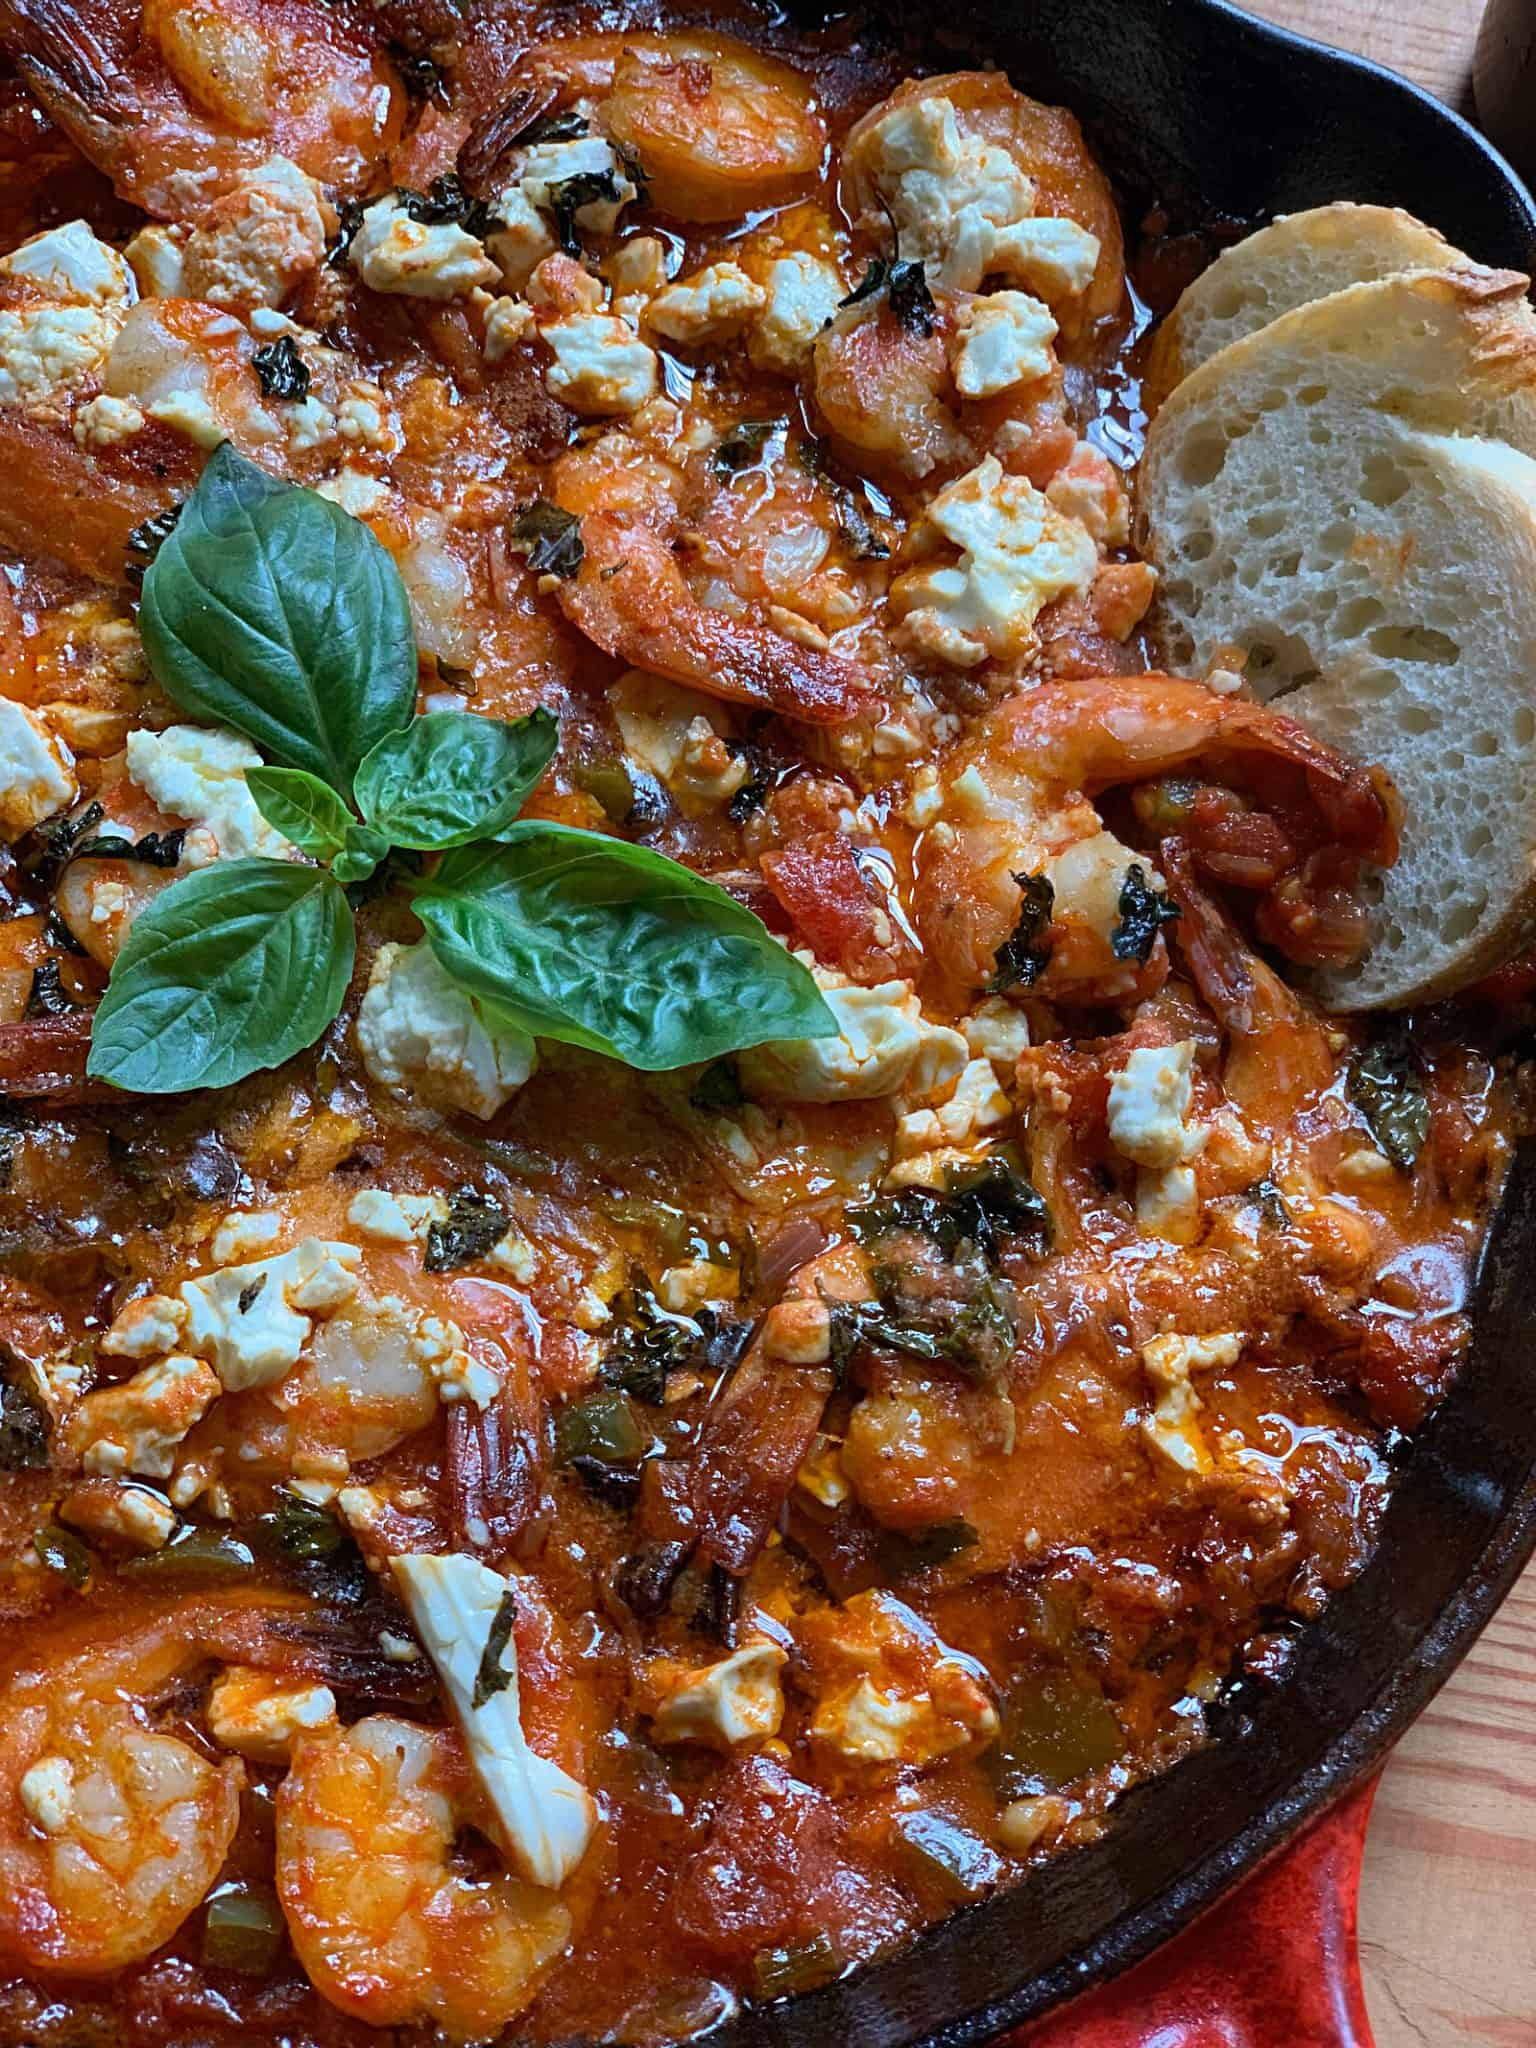 A red cast iron pan filled with a Greek shrimp bake - garides saganaki. It has simple fresh ingredients like juicy tomatoes, tender shrimp, onions, peppers and a secret weapon, a shot of ouzo! Some basil, star anise and red cili flakes are on the side.